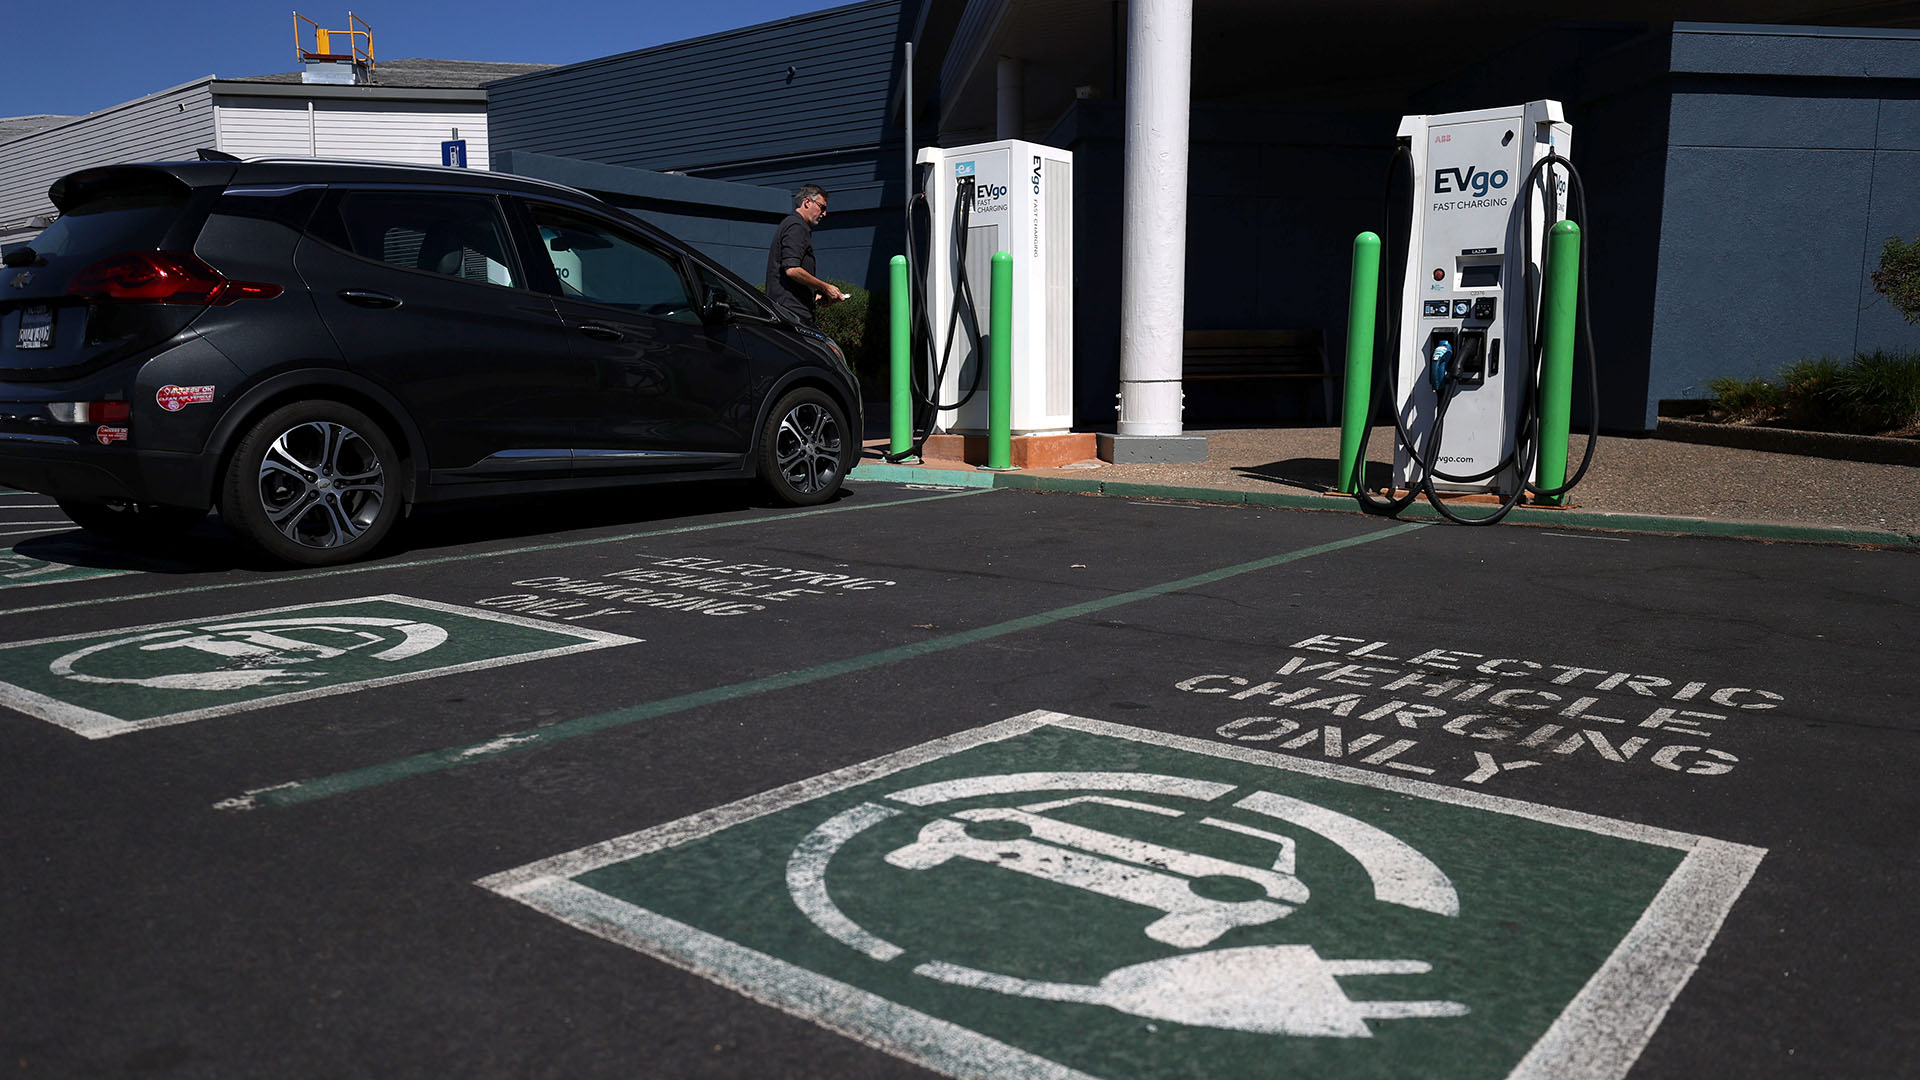 An electric car owner prepares to charge his car at an electric car charging station on September 23, 2020 in Corte Madera, California. (Photo by Justin Sullivan/Getty Images)